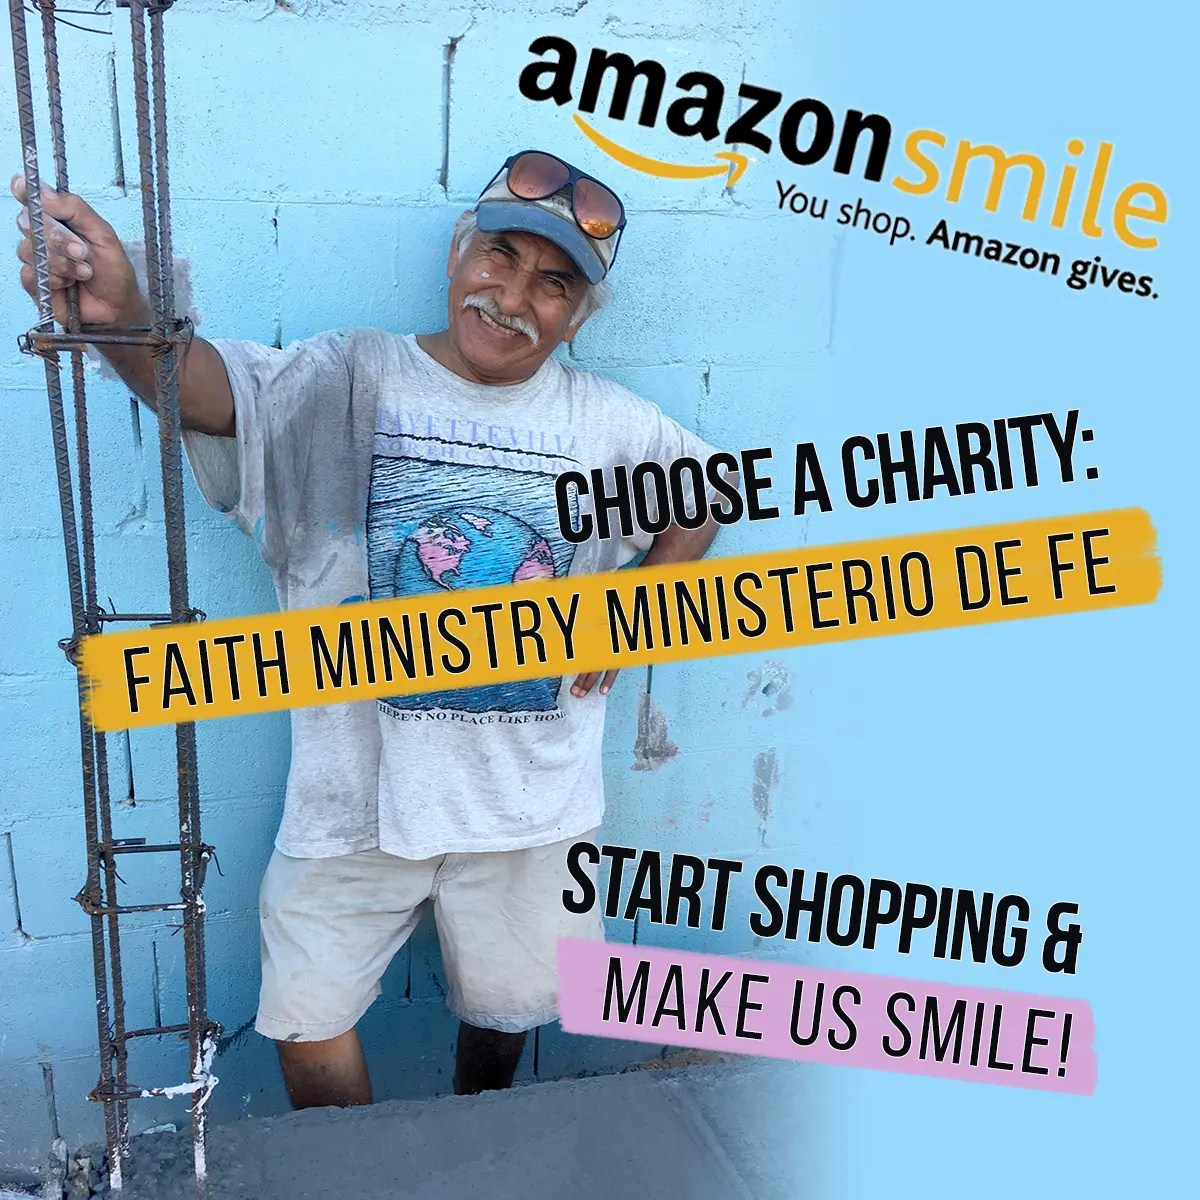 Shop on AmazonSmile and Amazon will give Faith Ministry a percentage of the purchase